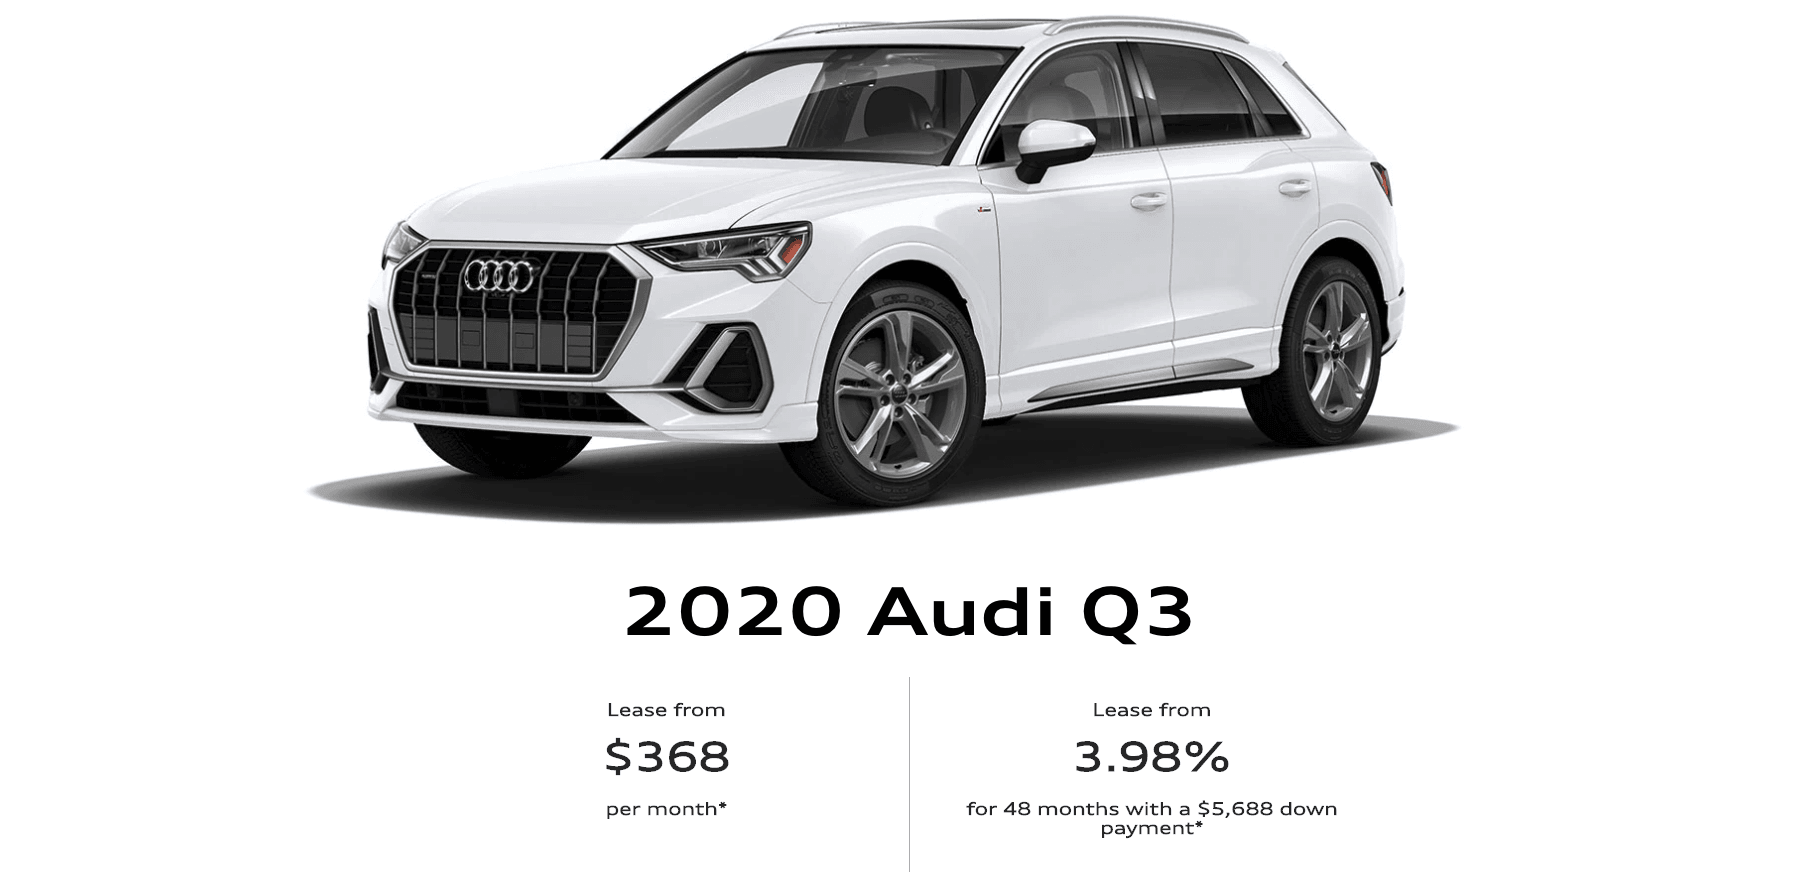 2020 Audi Q3 To